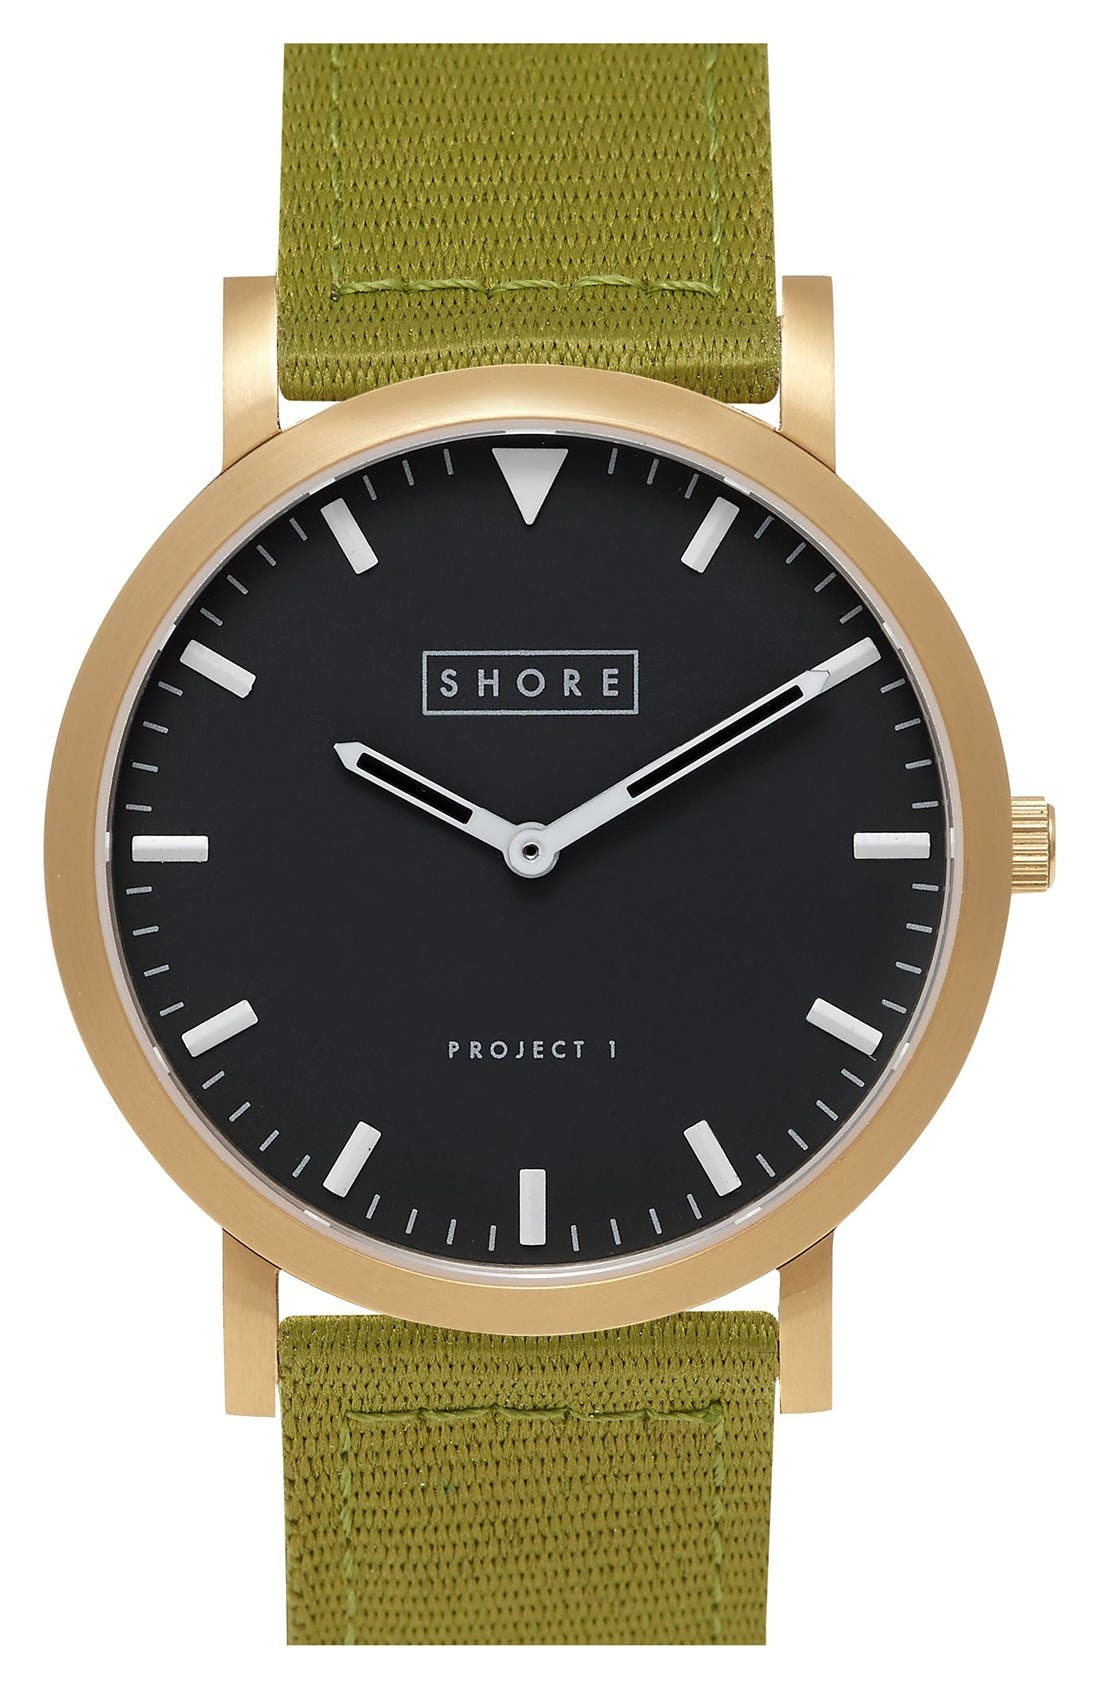 Main Image - Shore Projects 'Project 1' Leather & Nylon Strap Watch, 39mm